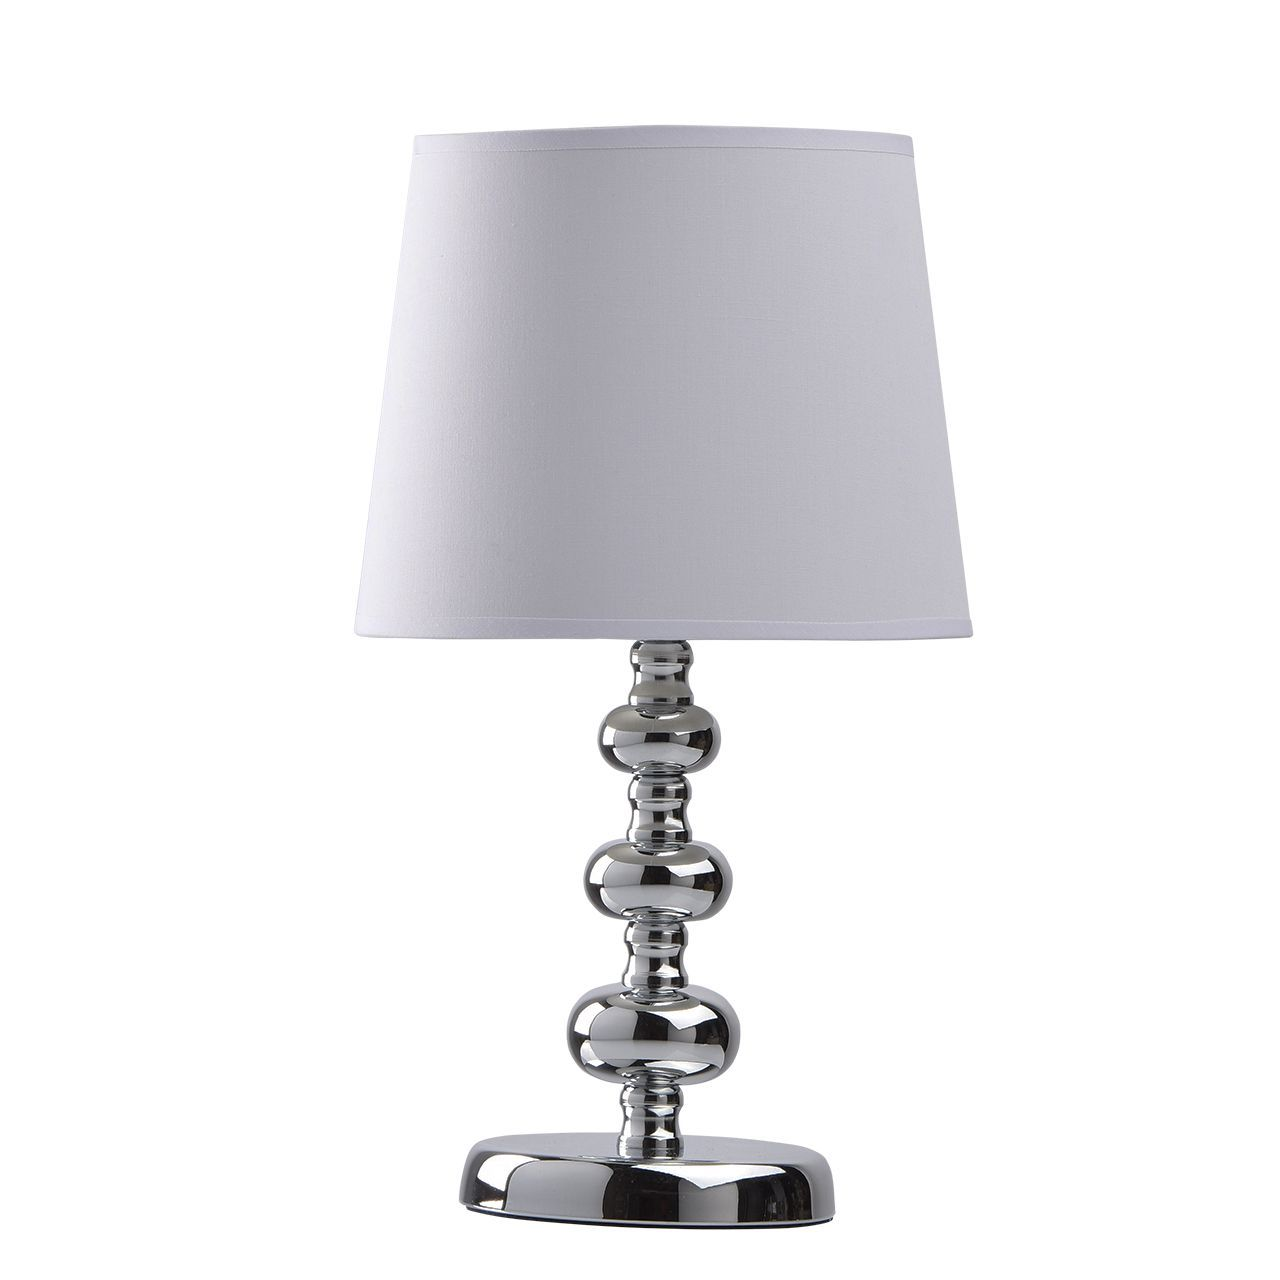 lampe de chevet pied m tal chrom bulles abat jour tissu blanc. Black Bedroom Furniture Sets. Home Design Ideas